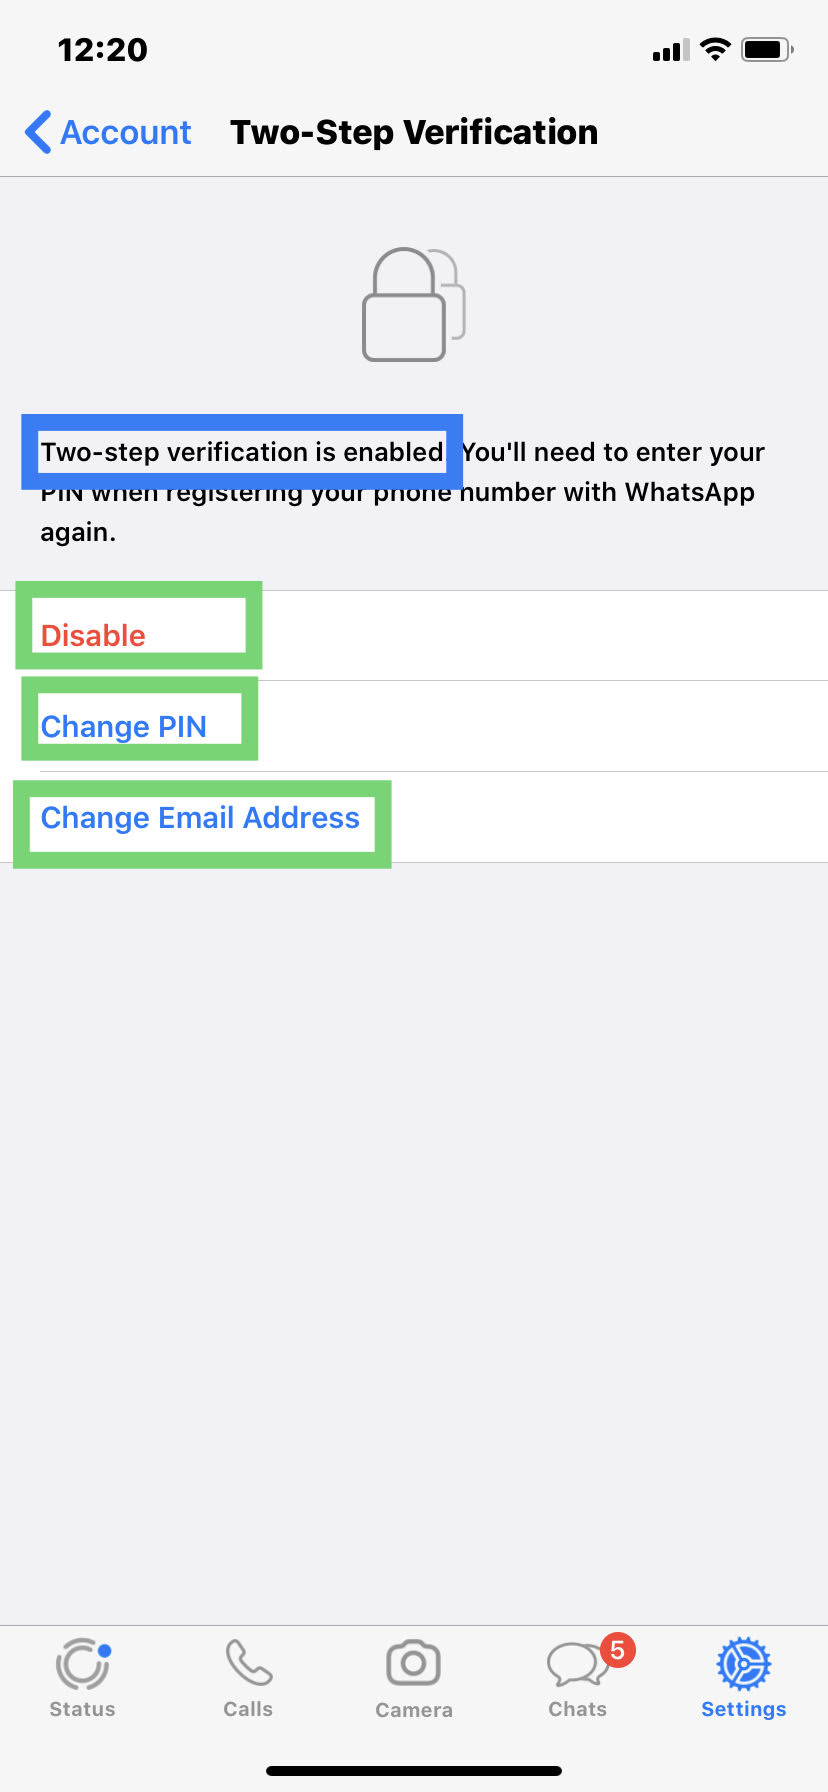 Whatsapp Account Mein Two Step Verification Enable Kaise Kare?